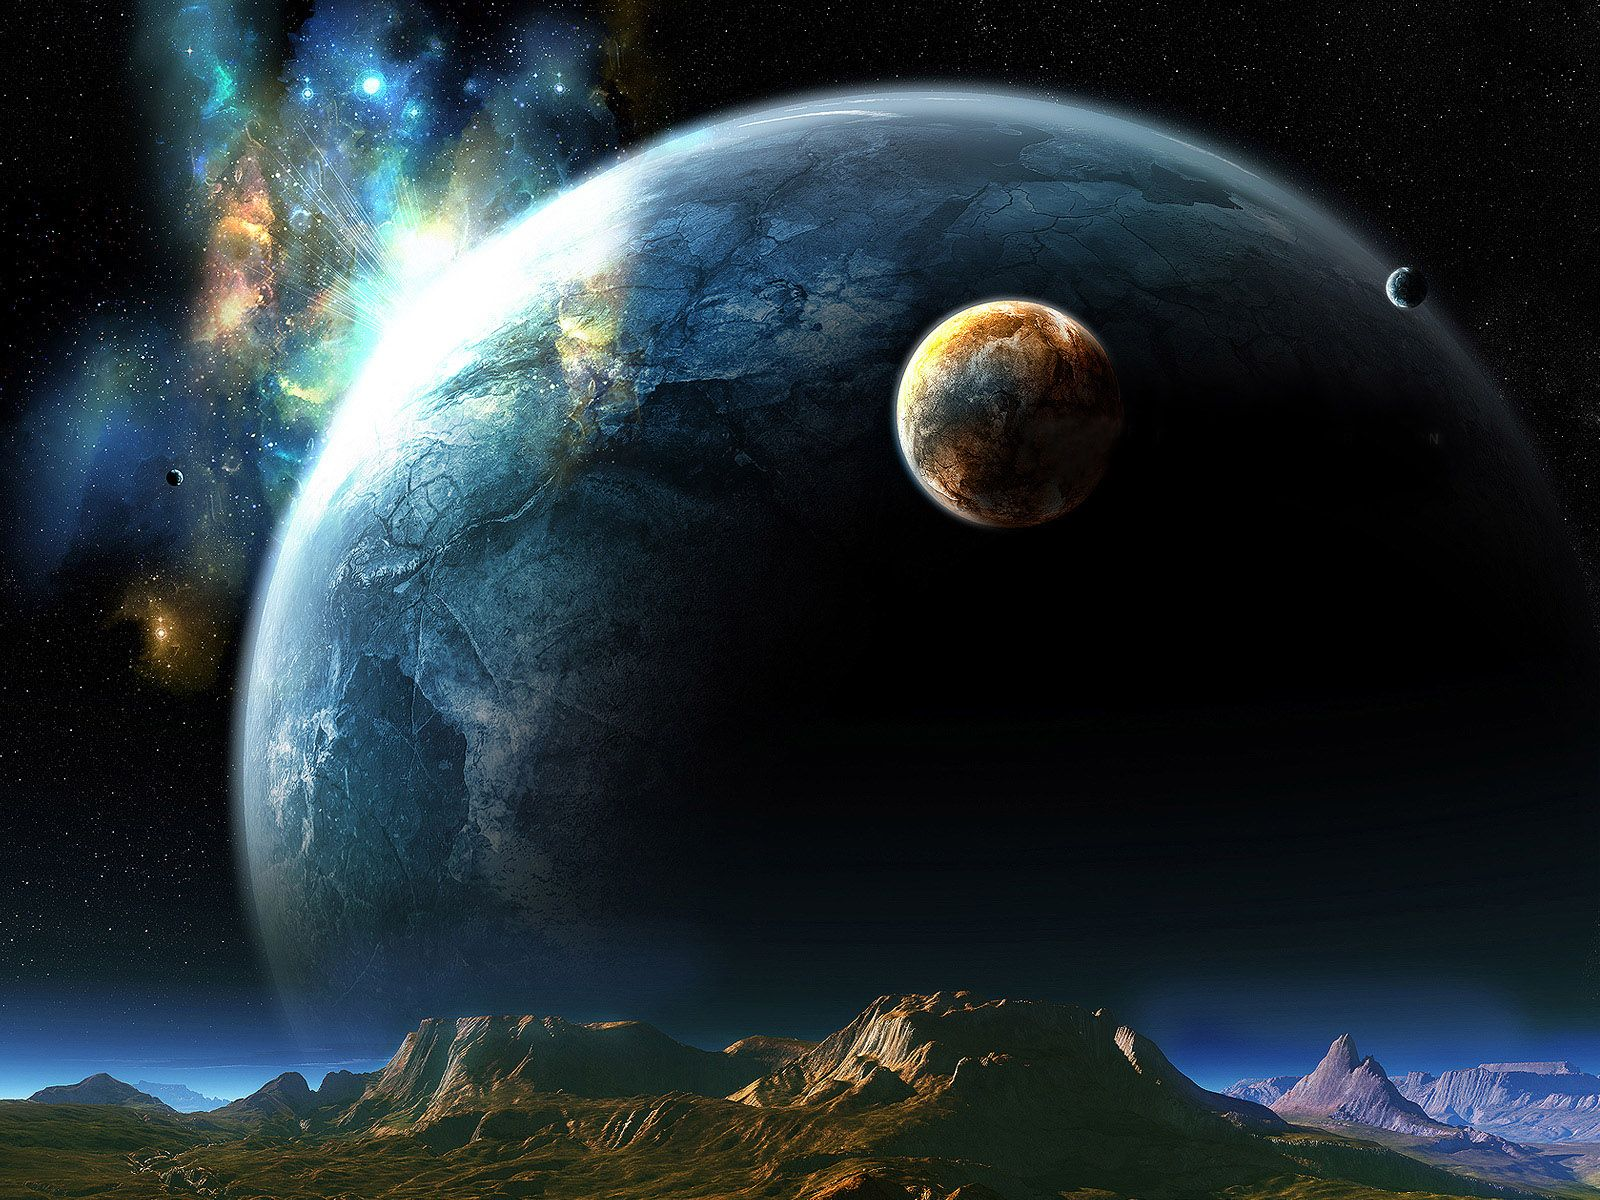 Free Hd 1080p Desktop Wallpapers Universe Wallpaper Planets Wallpaper Planets Planet Pictures